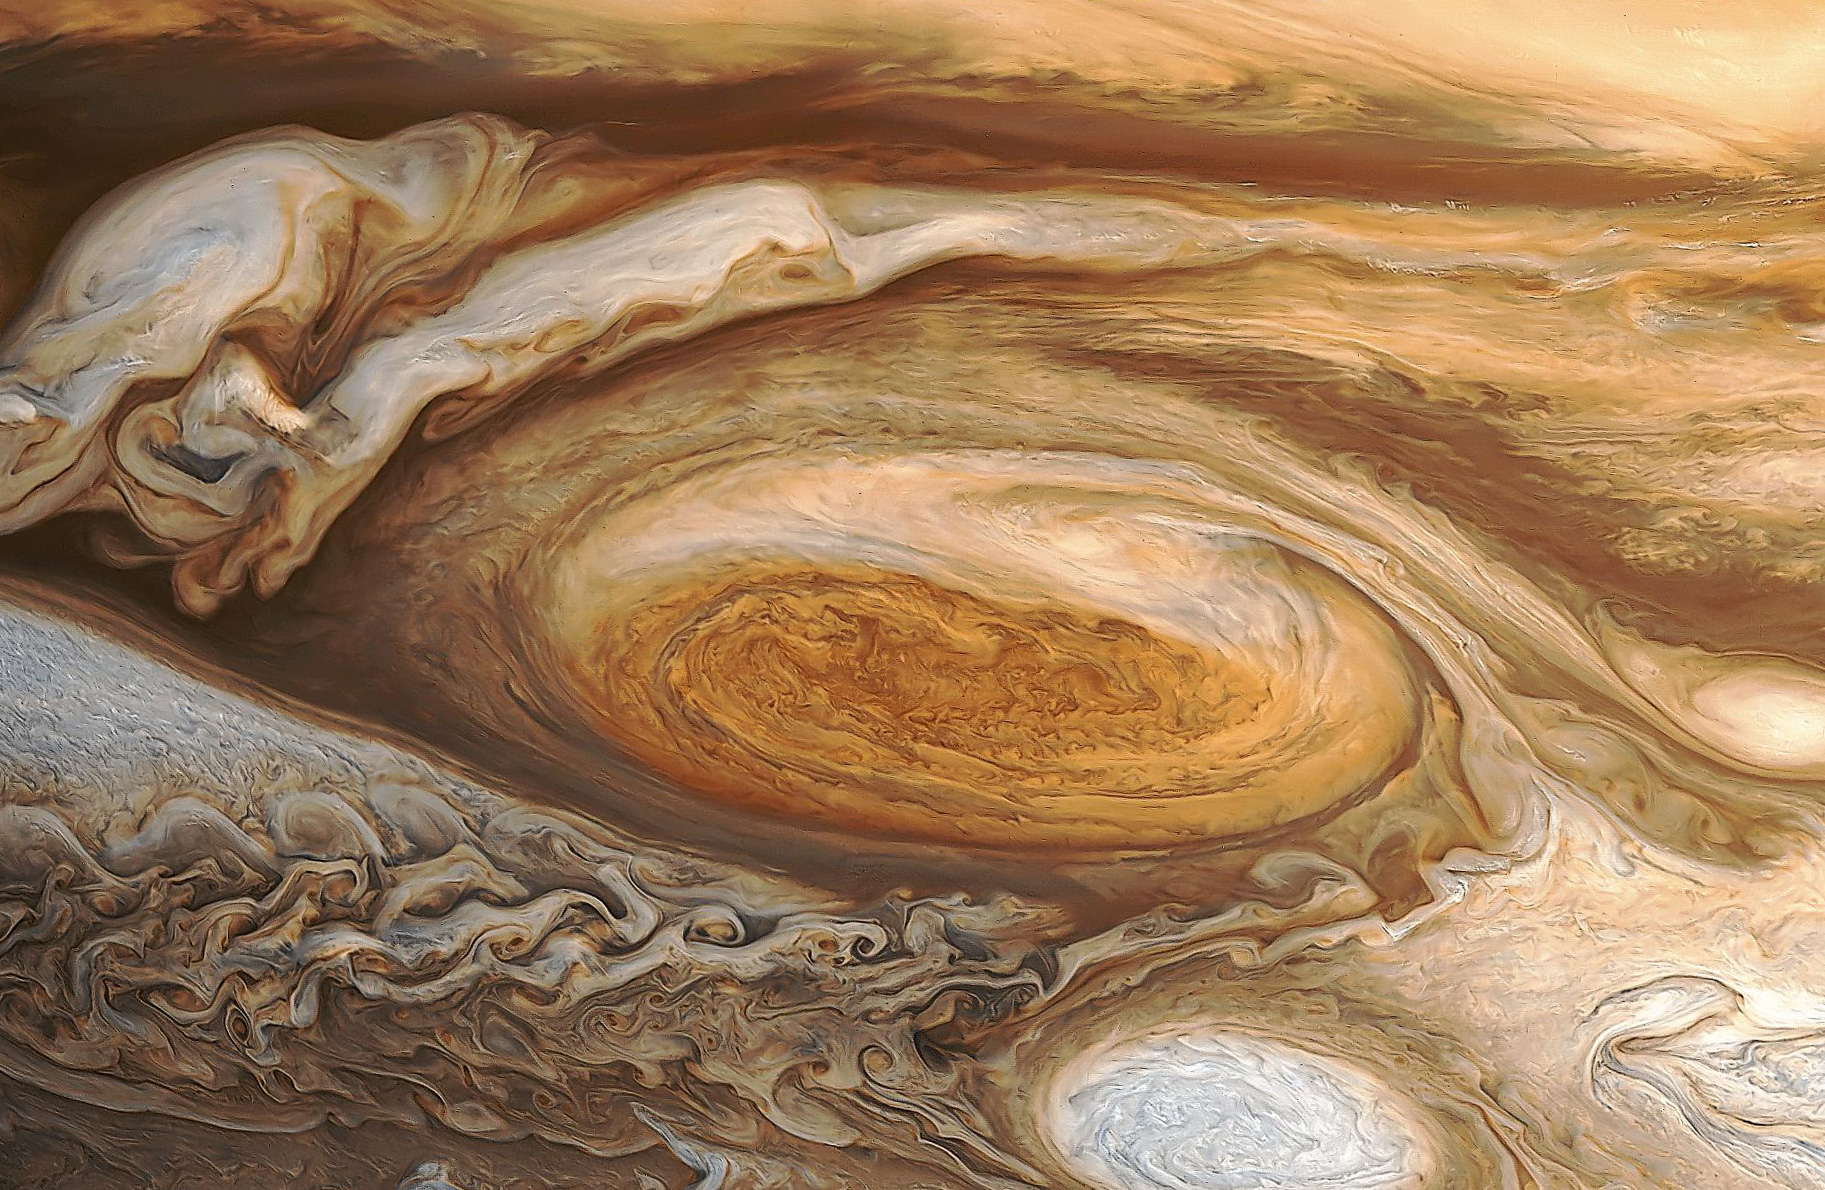 Jupiter's Great Red Spot (NASA via http://wanderingspace.net/category/jupiter/)